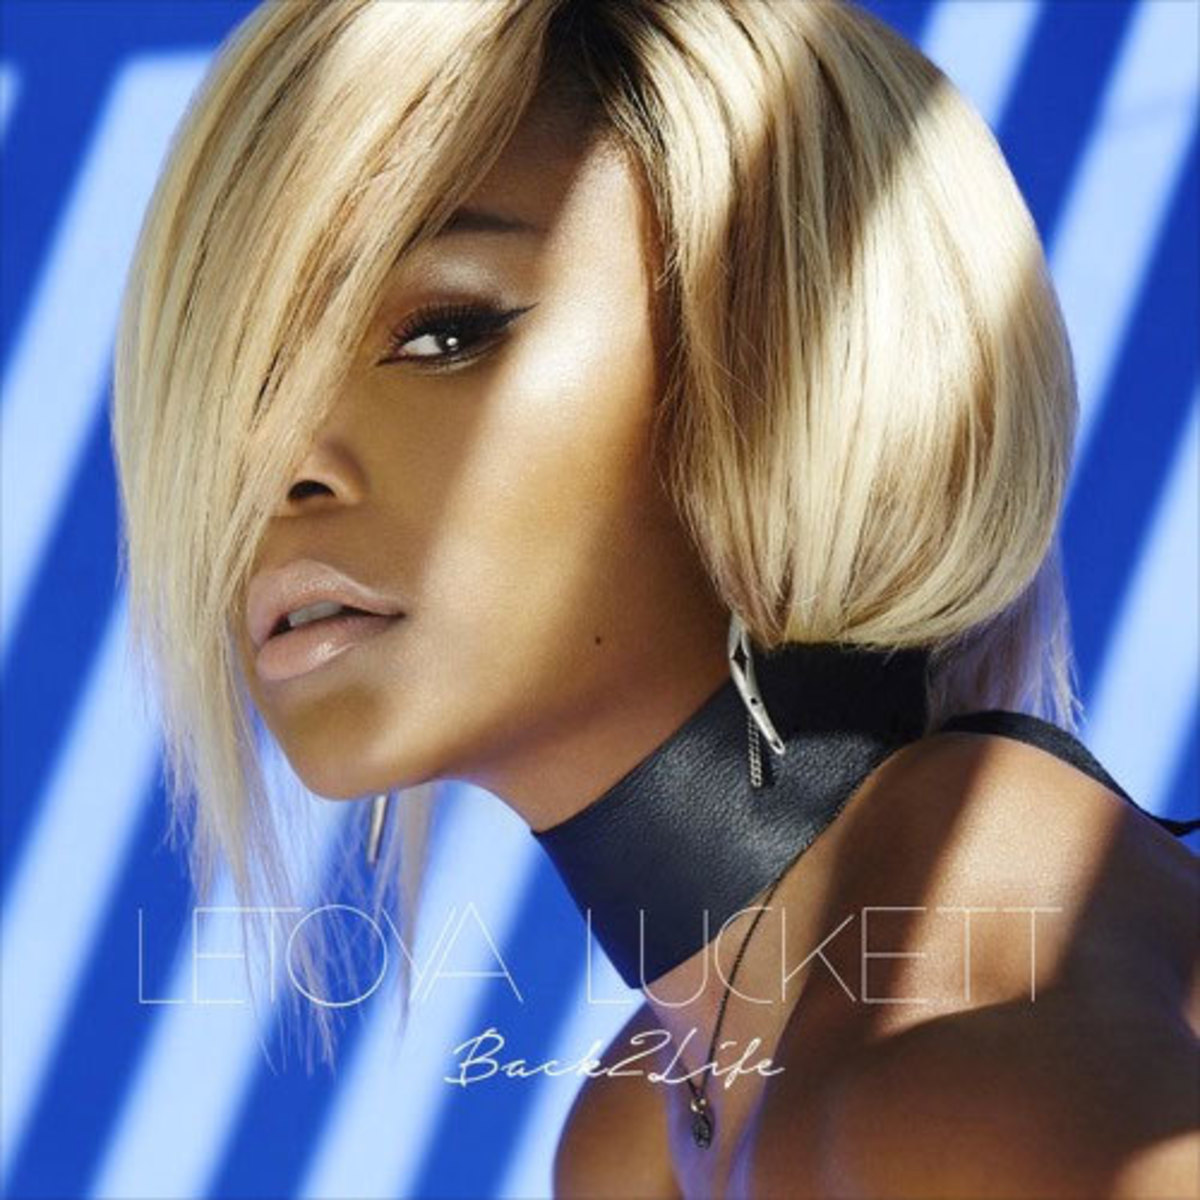 letoya-luckett-back-2-life.jpg